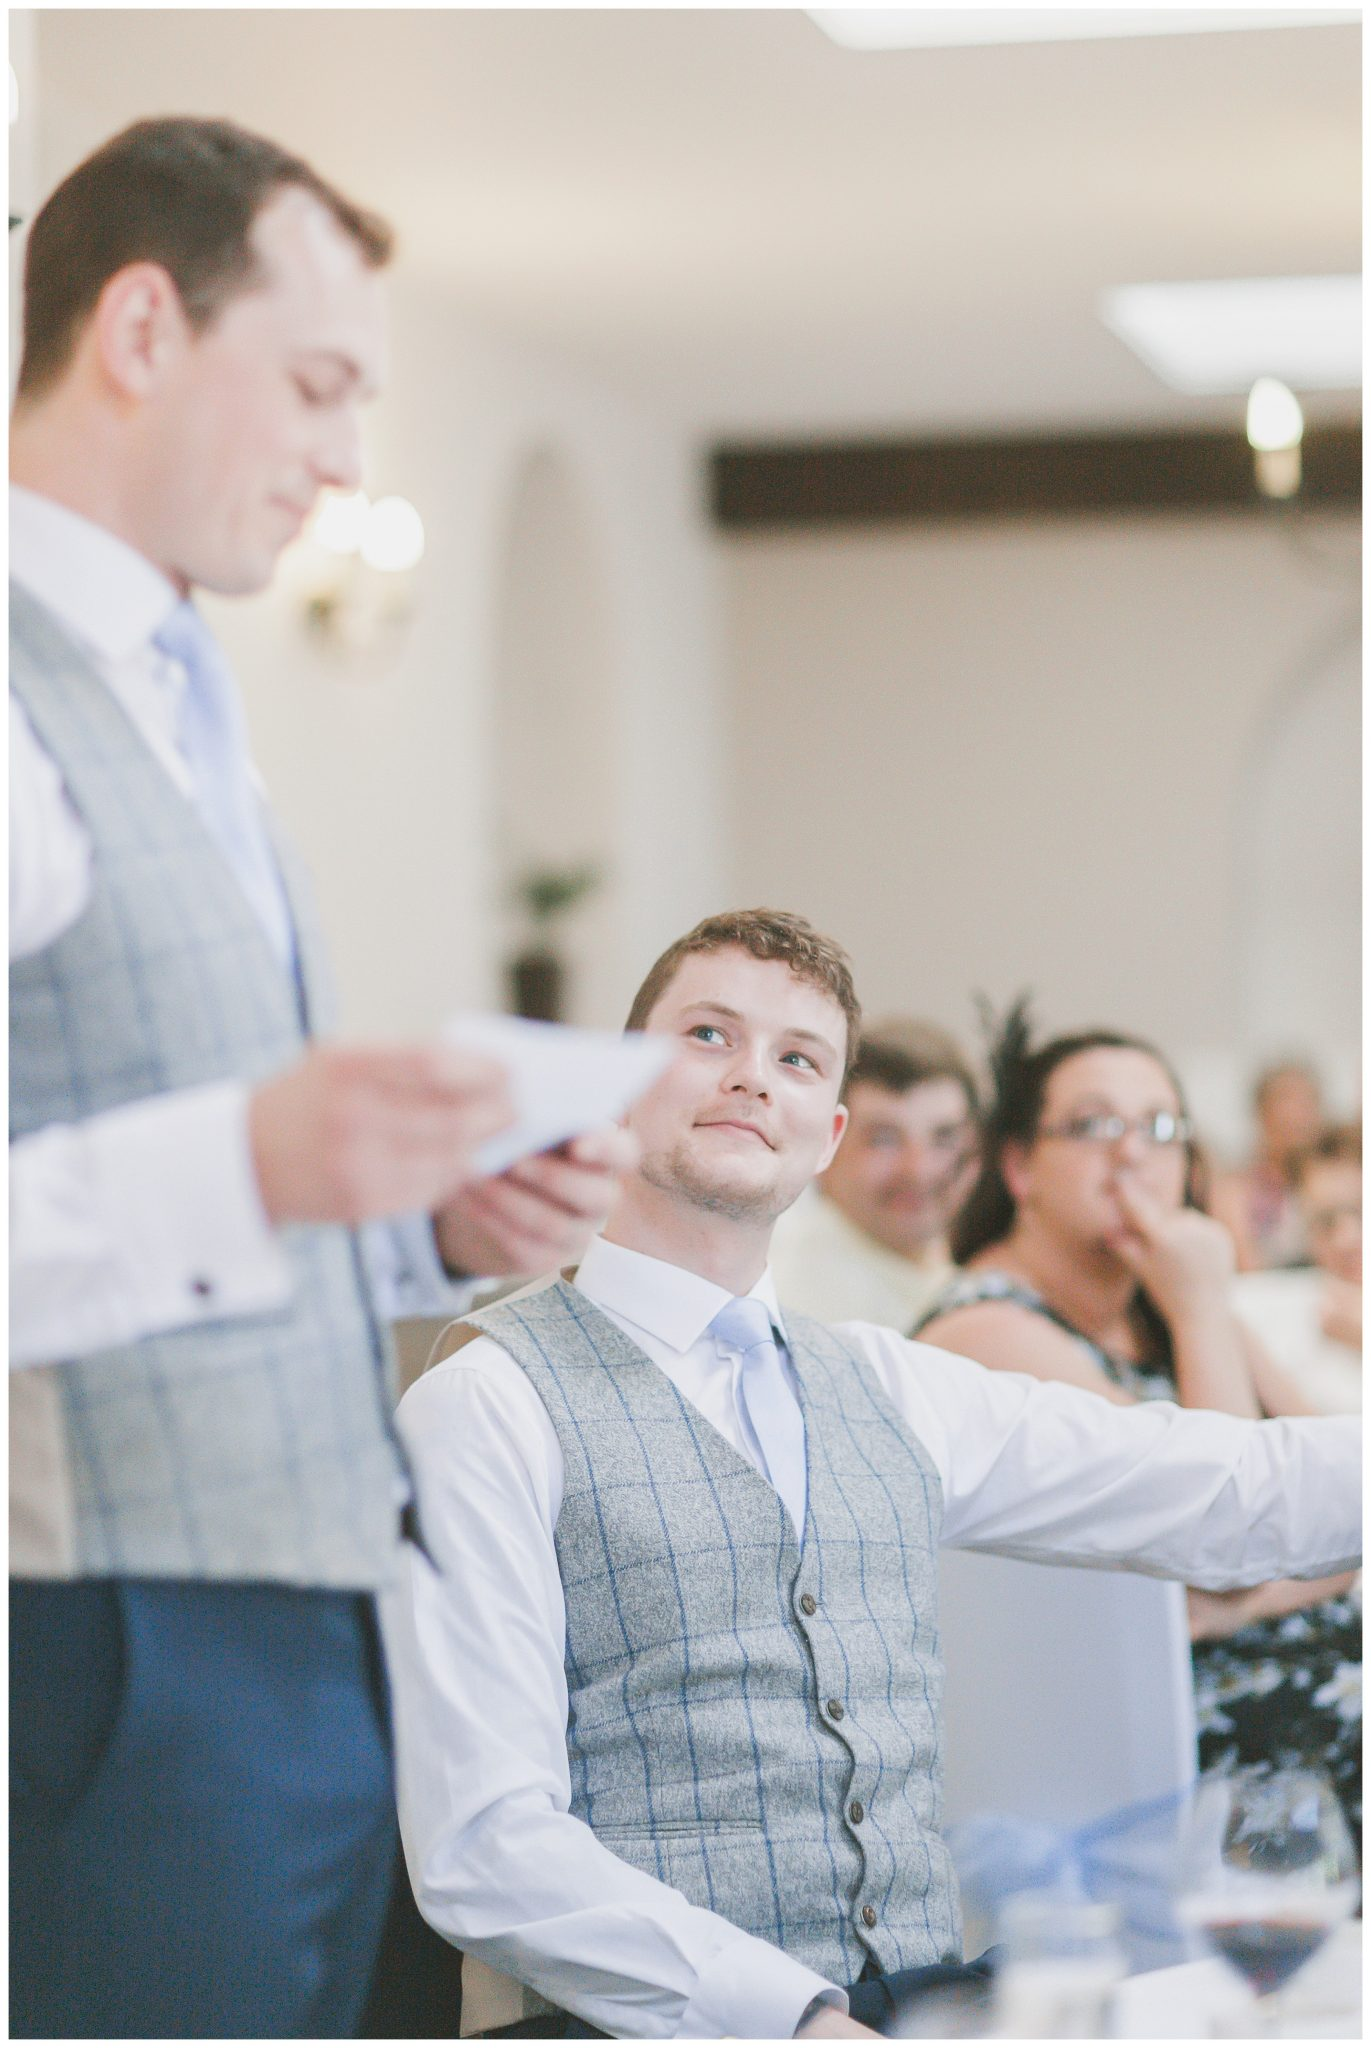 Best man looking at the groom during speeches.